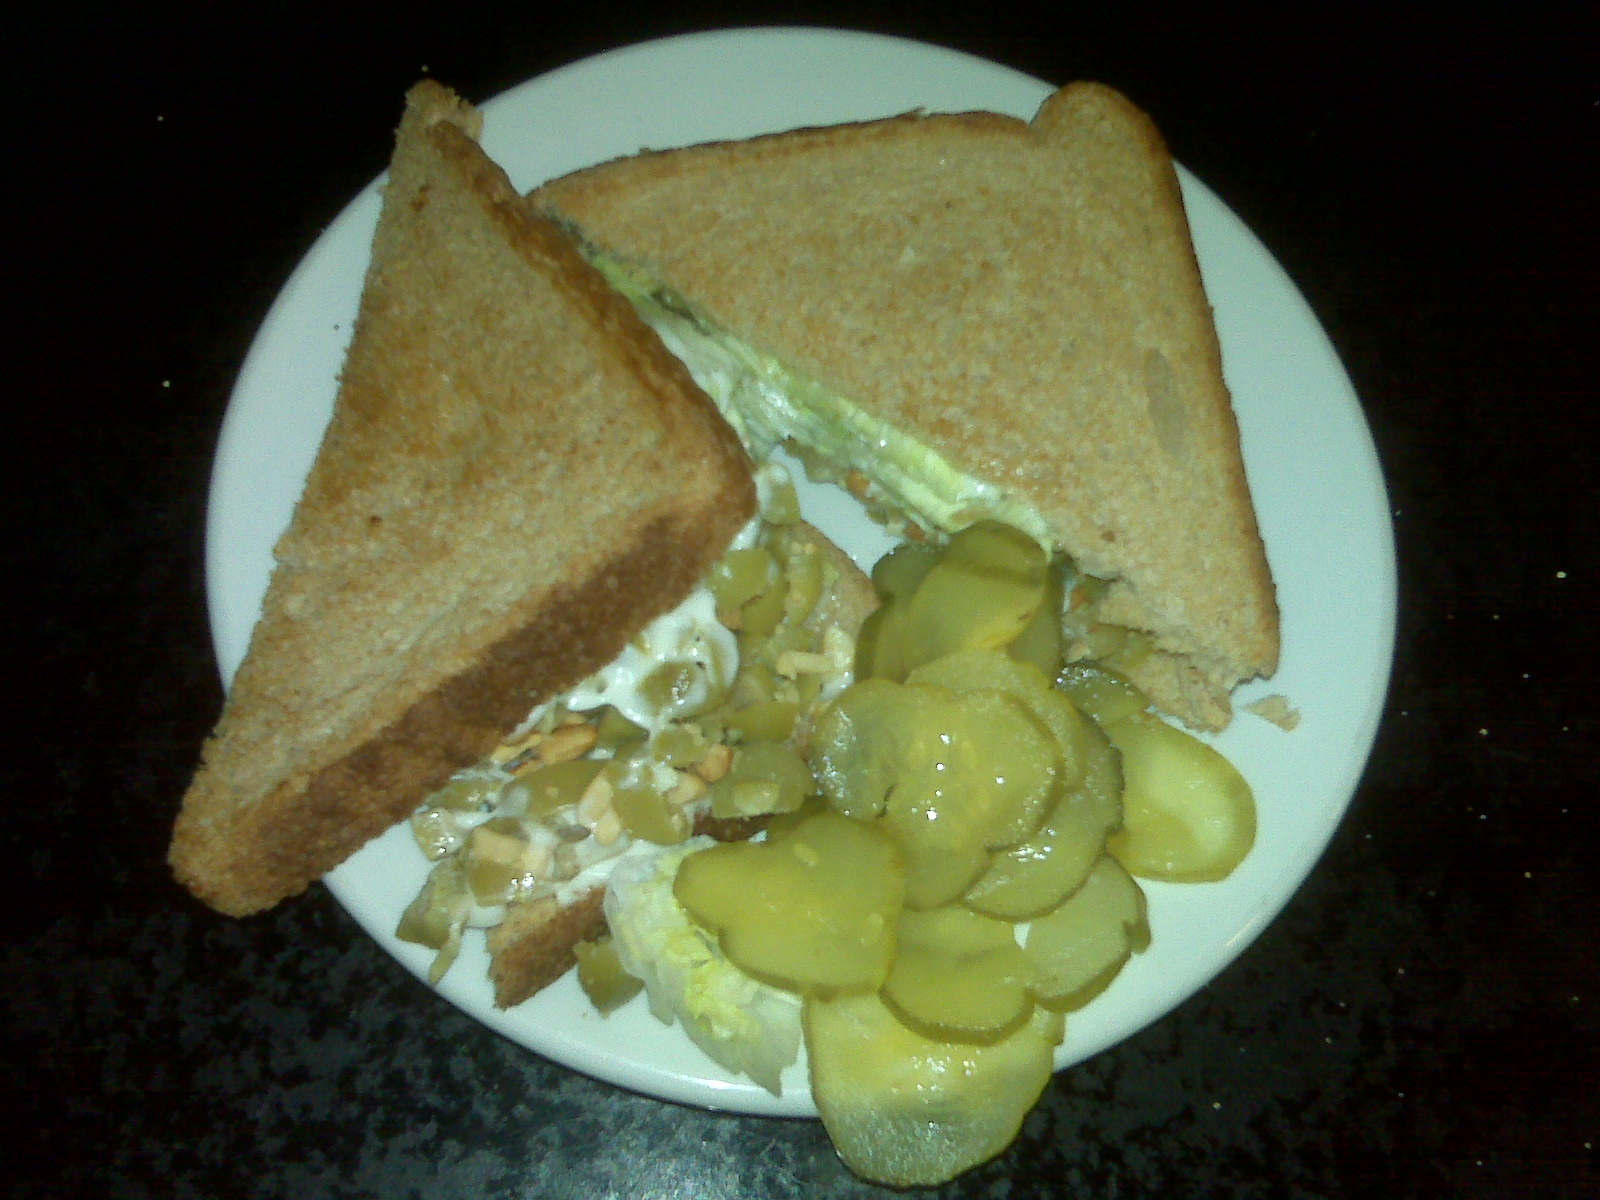 Olive nut sandwich at Olympia Candy Kitchen